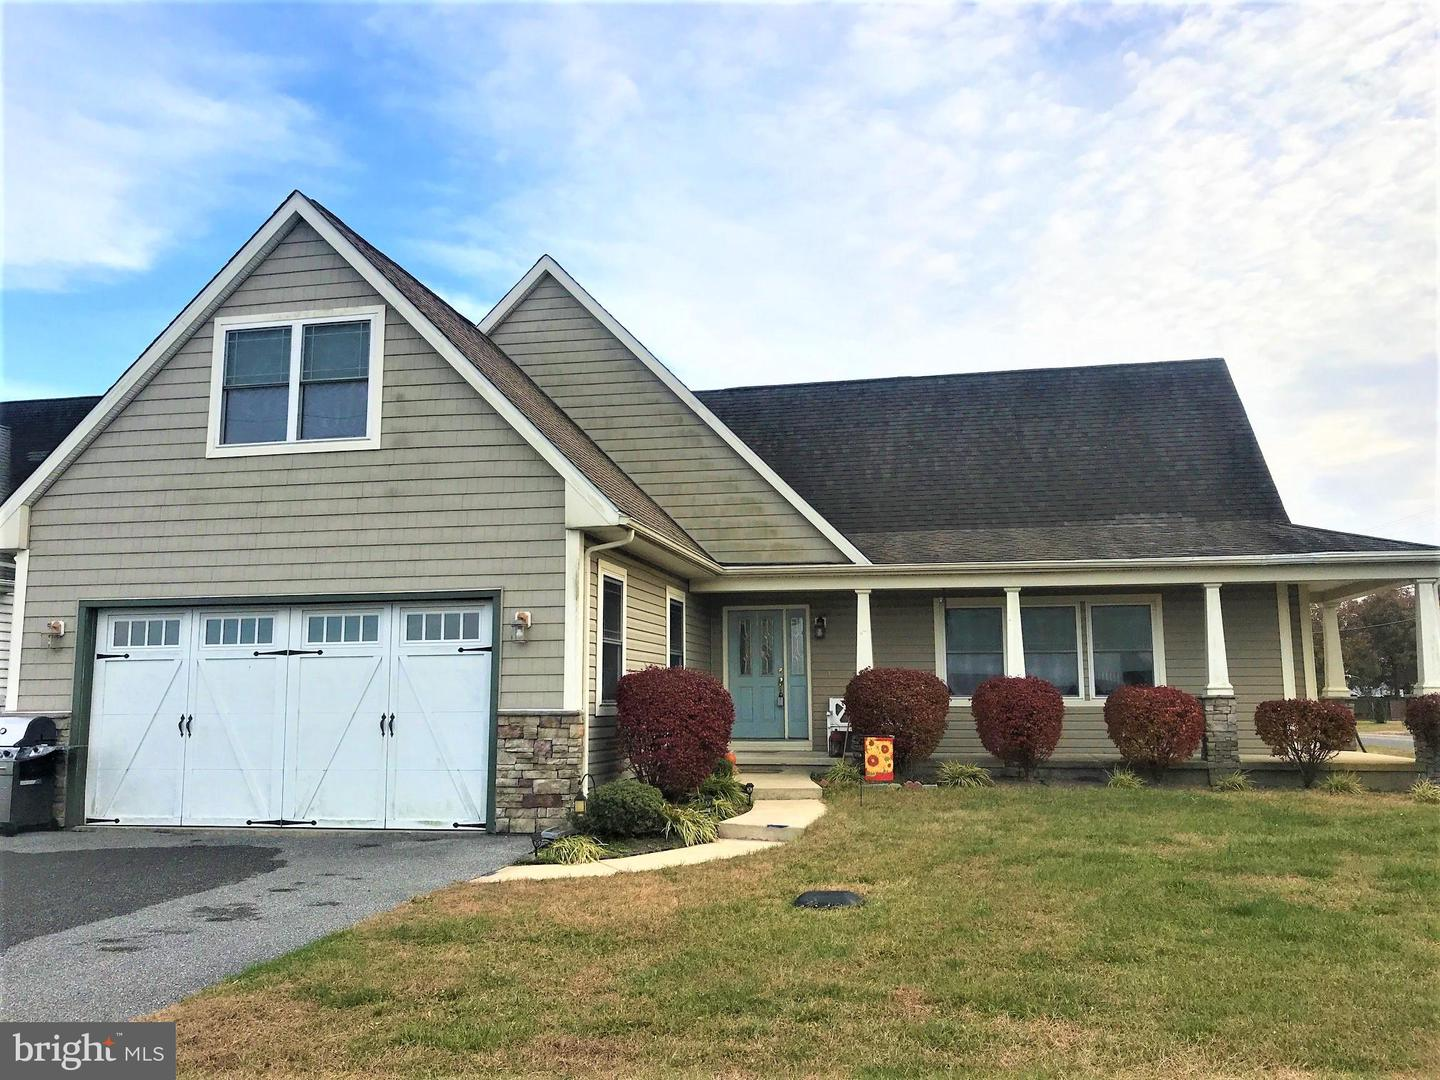 DESU154012-302205314922-2020-01-14-11-31-02 25380 Radish Rd | Millsboro, DE Real Estate For Sale | MLS# Desu154012  - Coldwell Banker Resort Realty